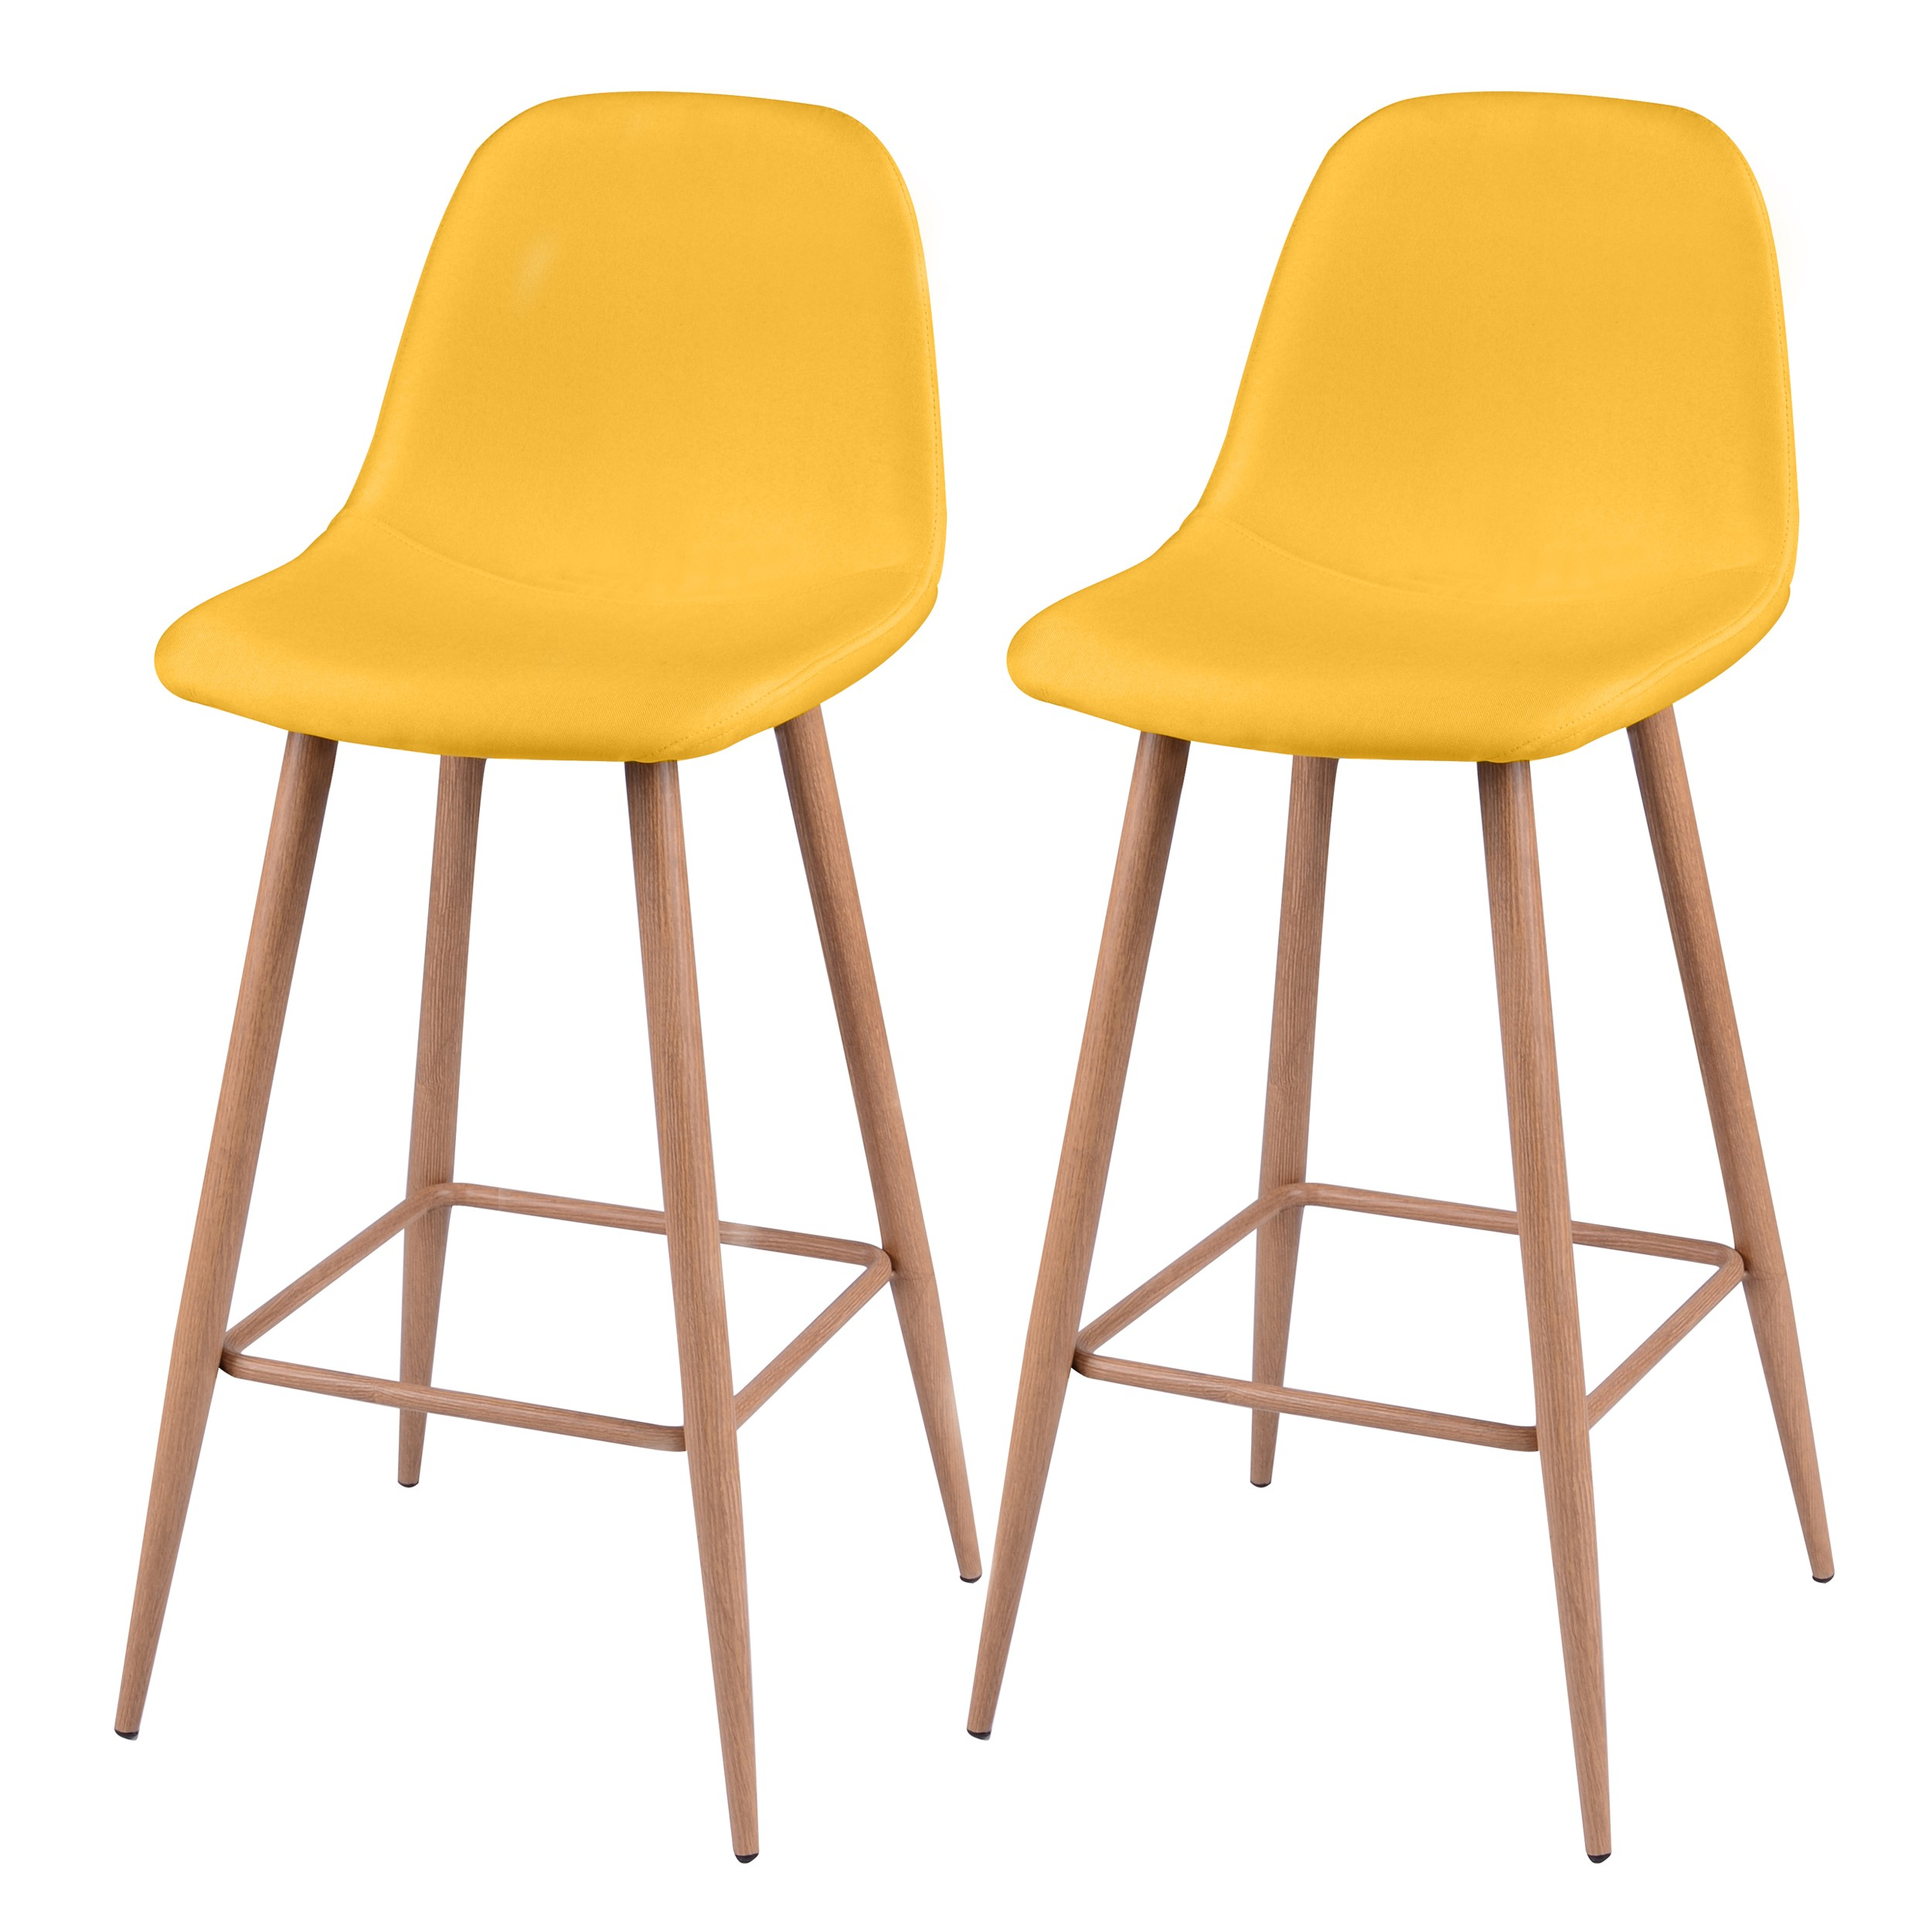 tabouret de bar fredrik jaune lot de 2 commandez nos tabourets de bar fredrik jaunes lot de. Black Bedroom Furniture Sets. Home Design Ideas